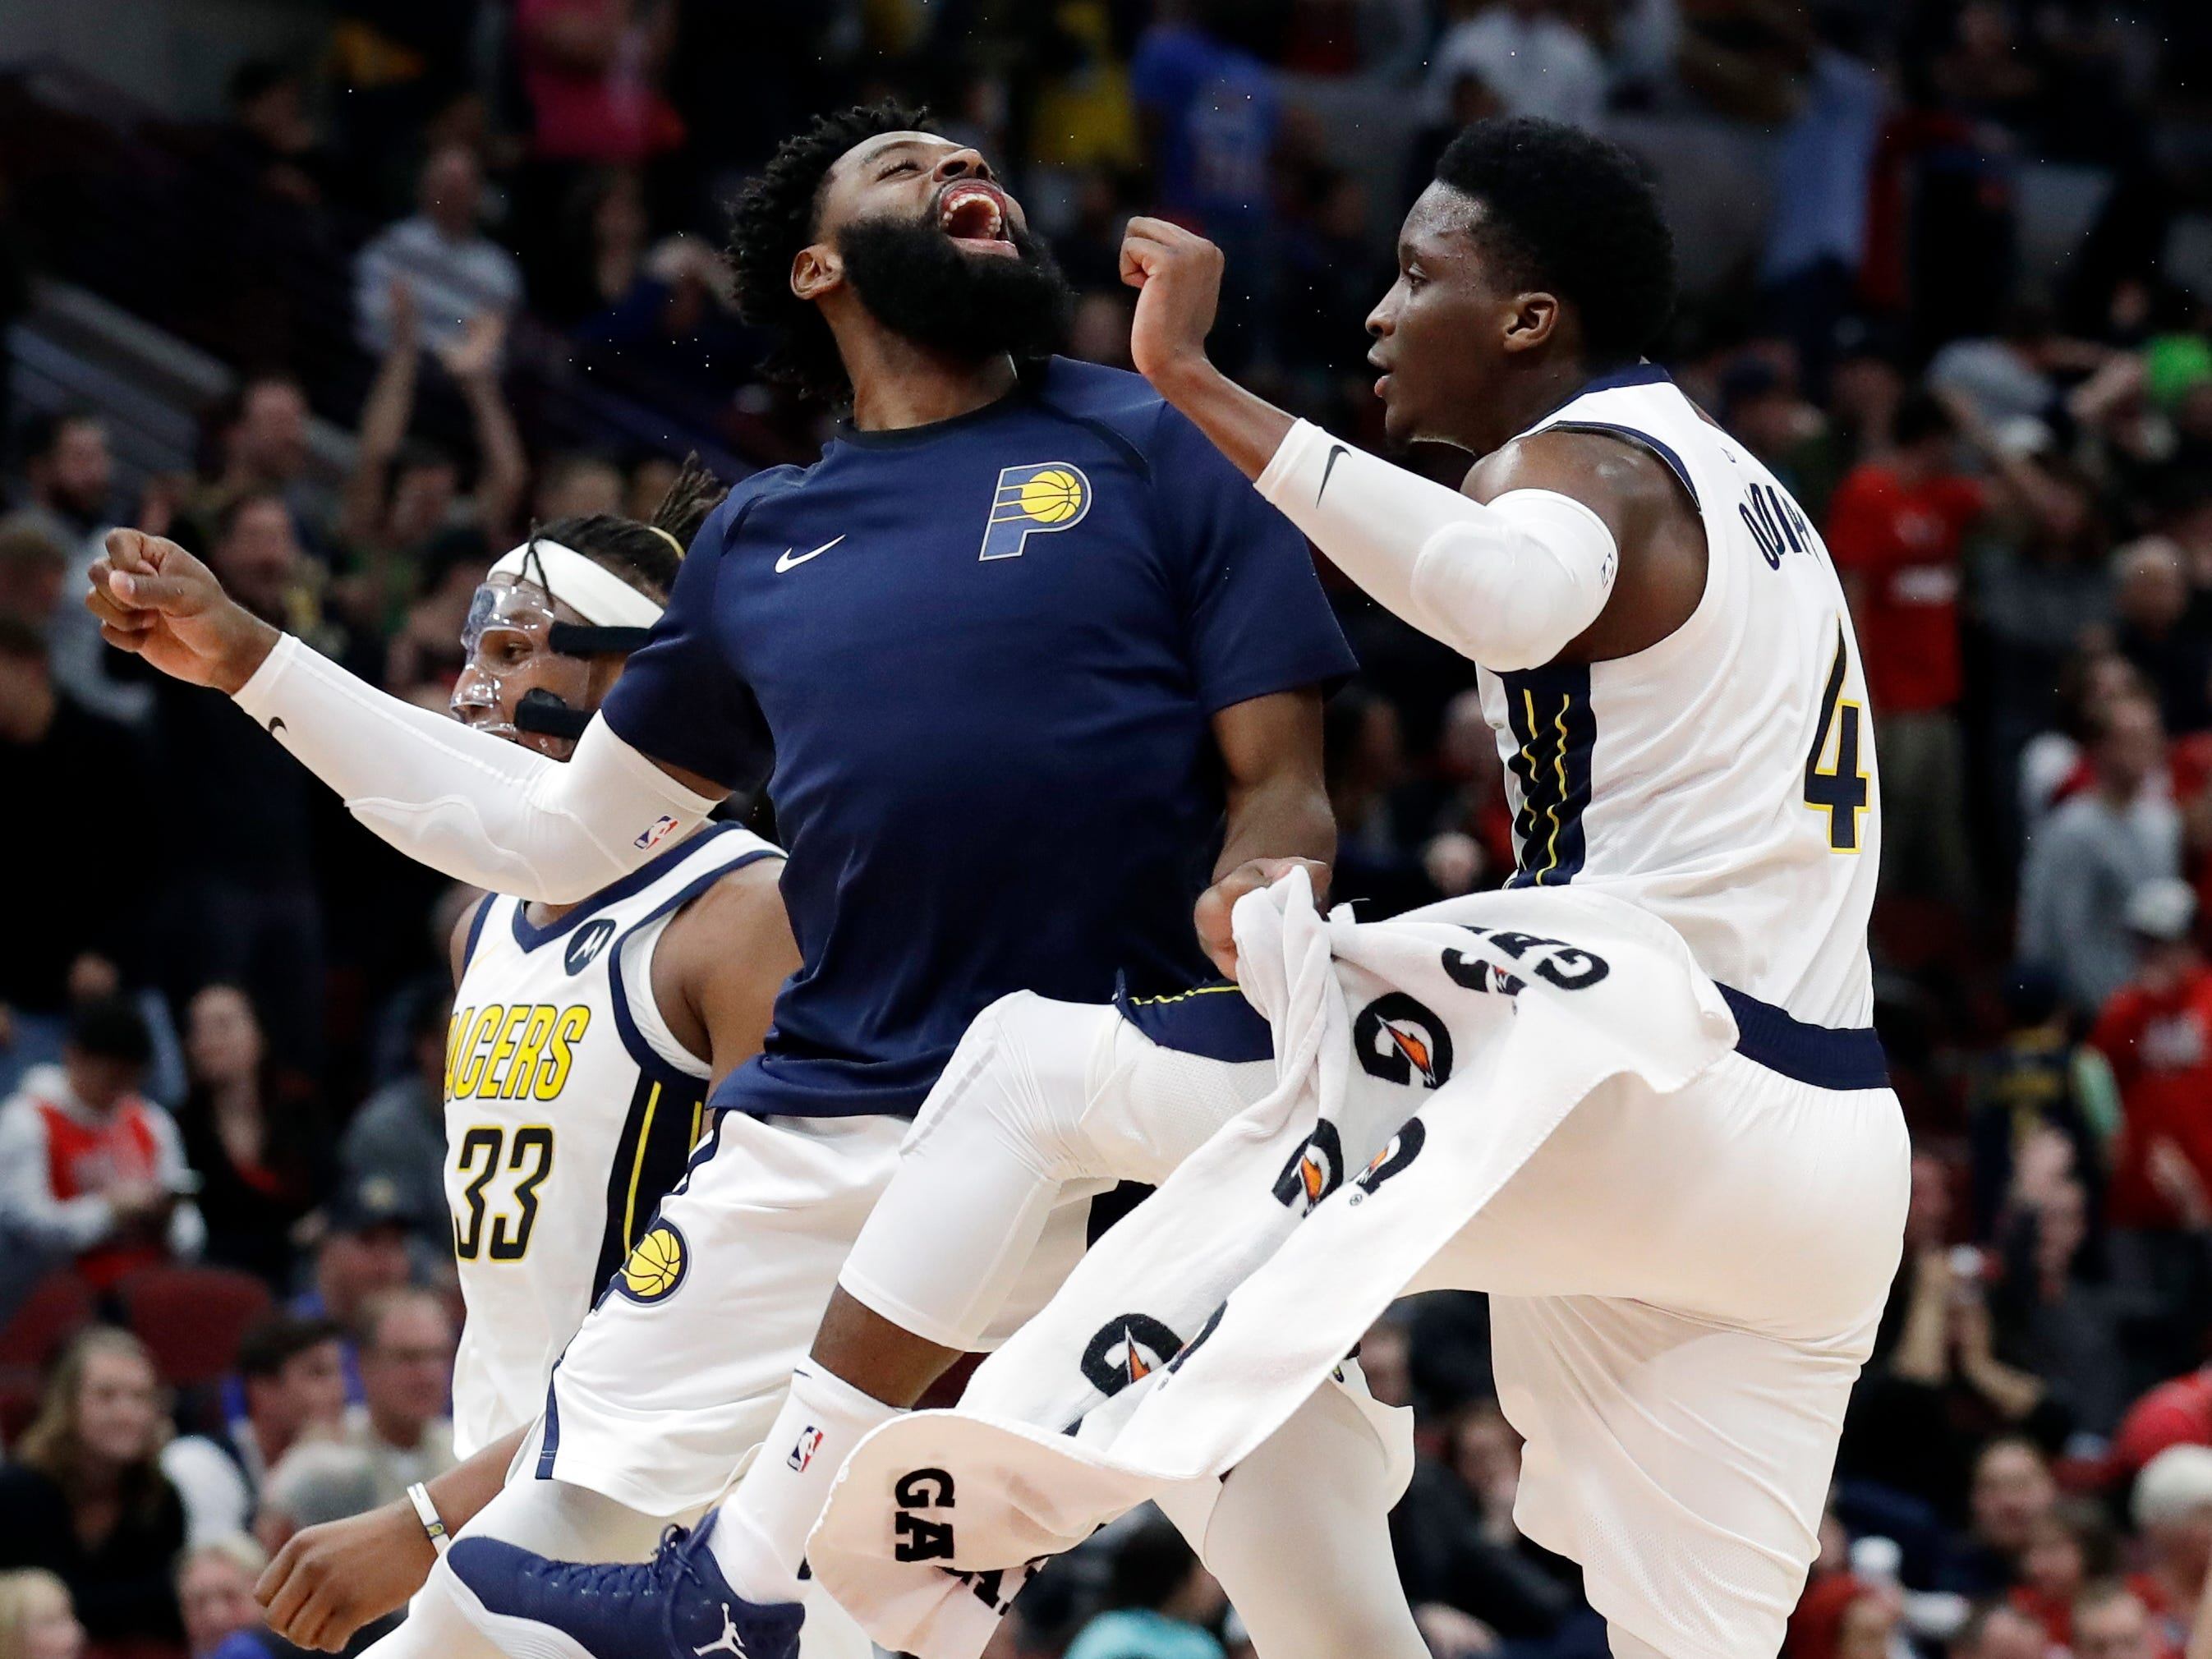 Indiana Pacers guard Victor Oladipo, right, celebrates with guard Tyreke Evans after he made a three-point basket against the Chicago Bulls during overtime of an NBA basketball game Friday, Jan. 4, 2019, in Chicago. (AP Photo/Nam Y. Huh)